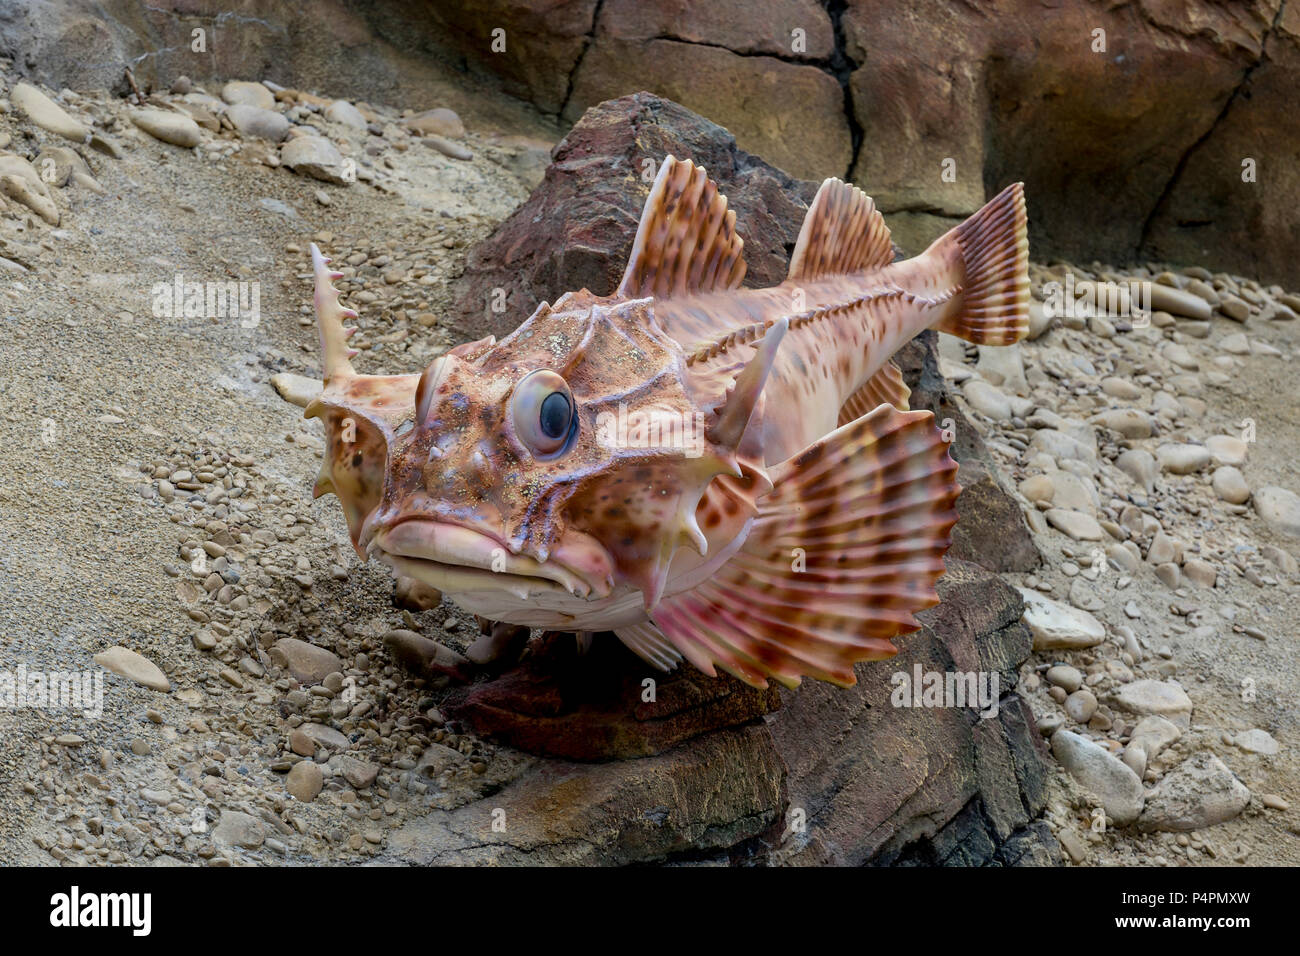 Russia, Vladivostok, 05/26/2018. Sculpture of Goby fish (Gobiidae) on a rock in a marine amusement park. Placed in amusement park of Oceanarium on Rus - Stock Image